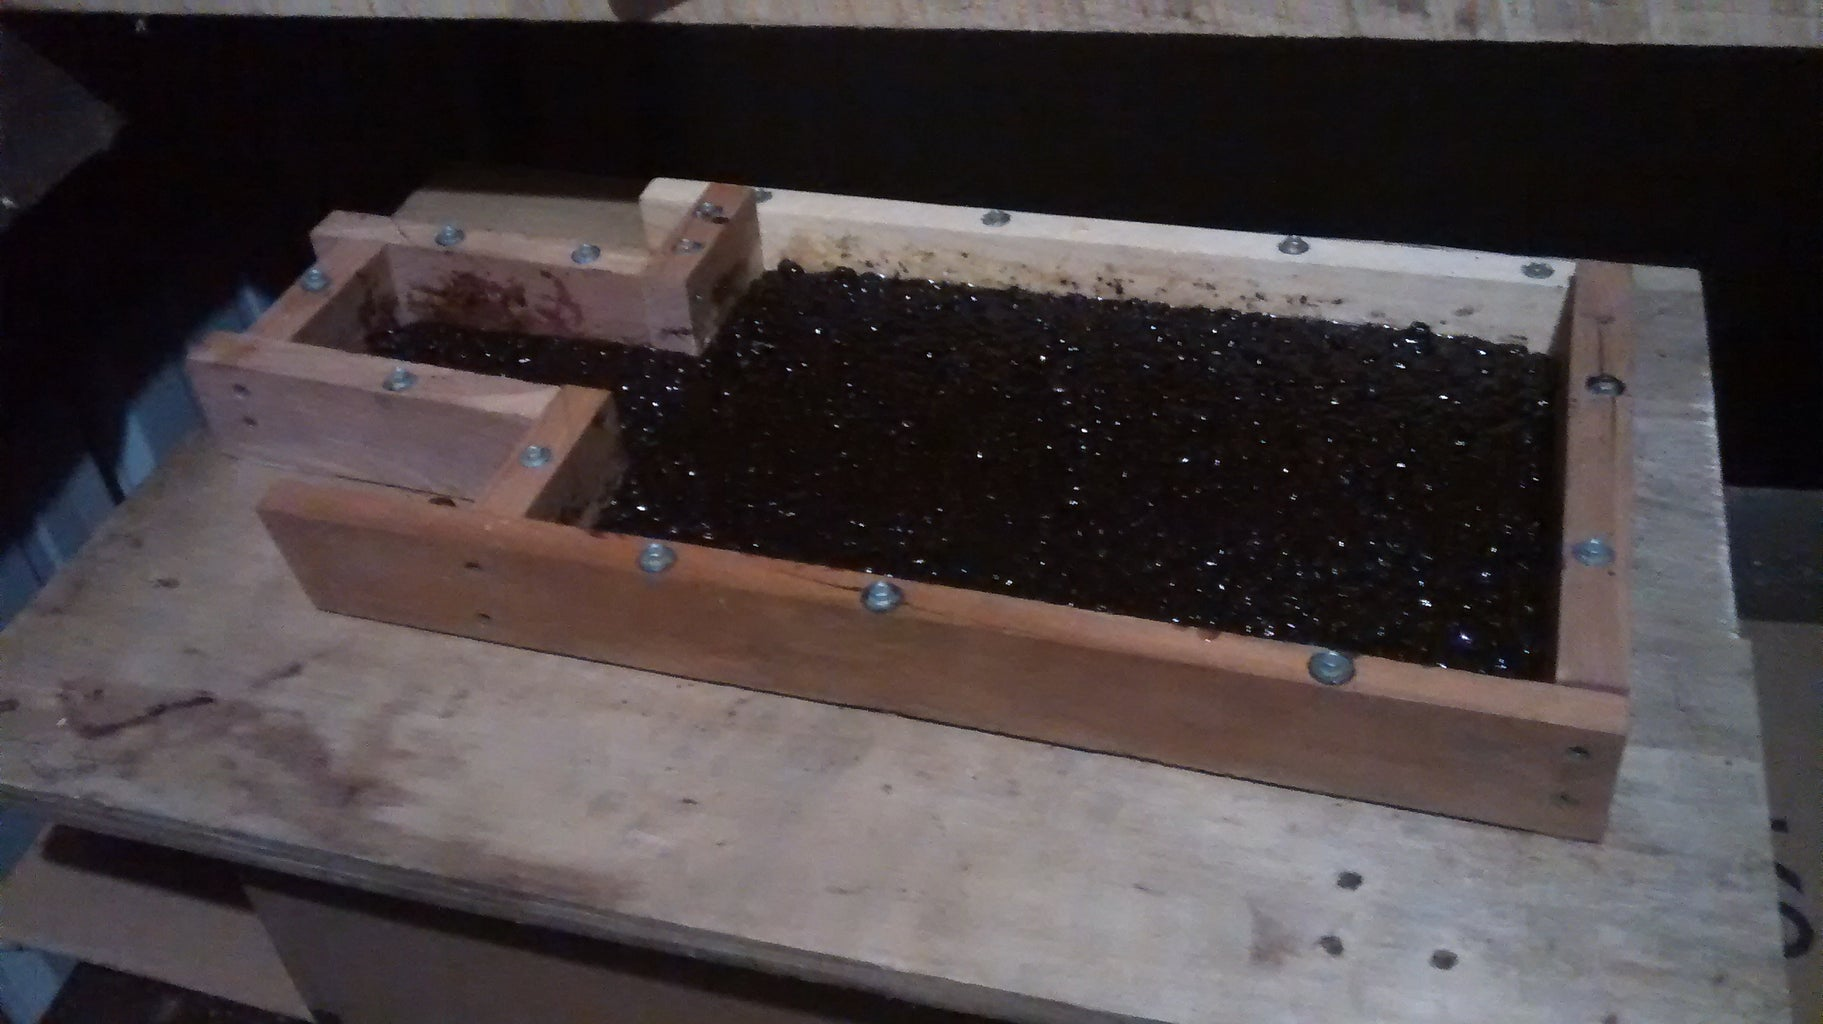 Mixing Epoxy With Coffee Beans